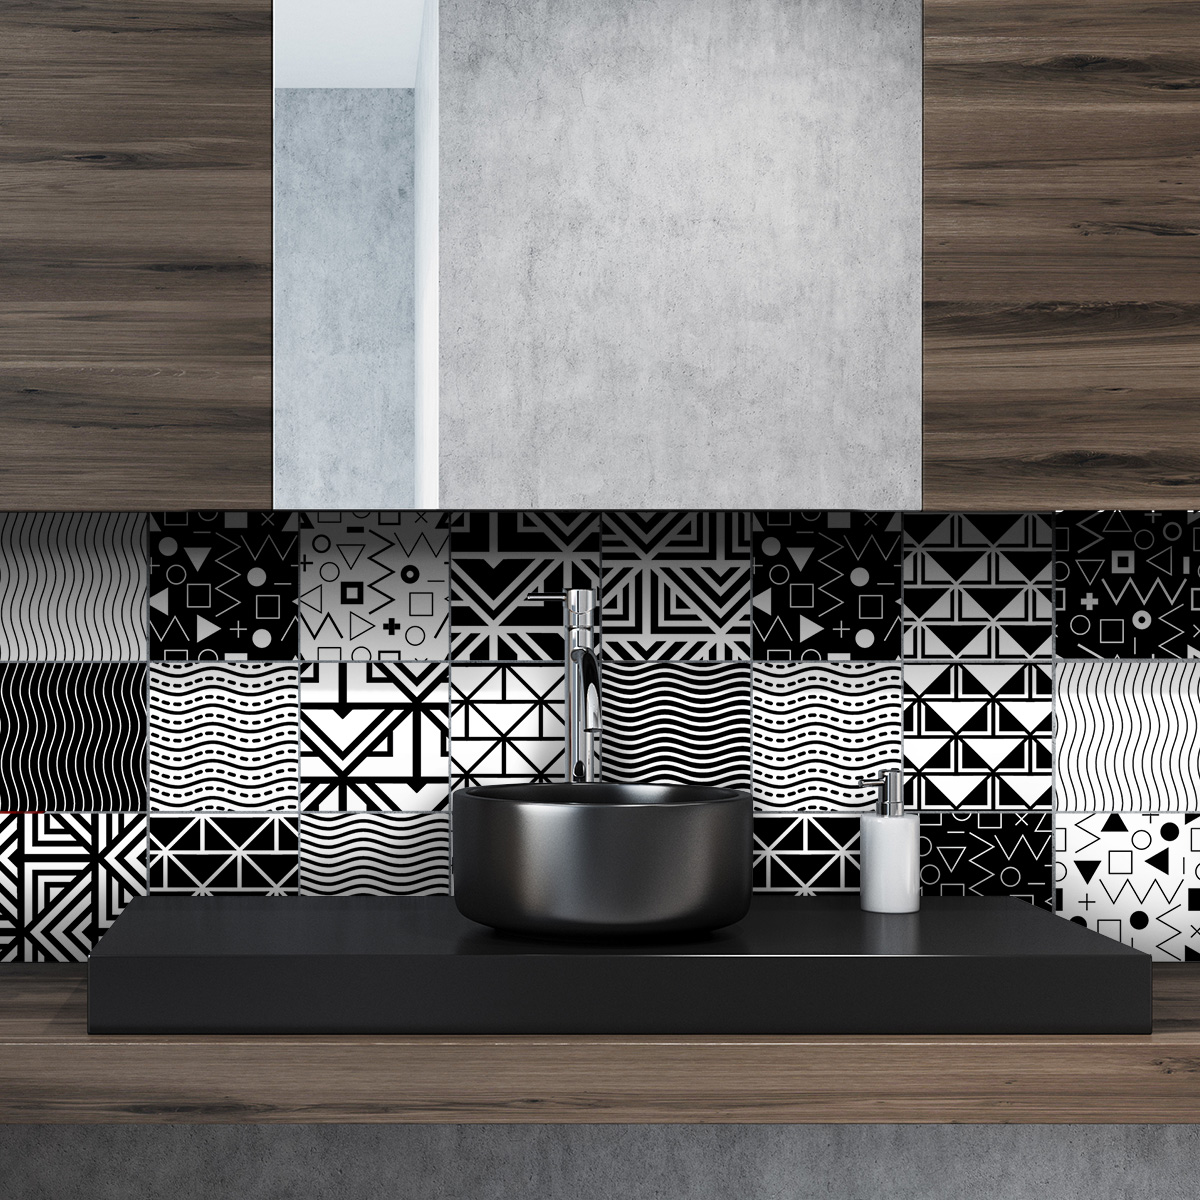 24 stickers carreaux de ciment ethnique varna cuisine. Black Bedroom Furniture Sets. Home Design Ideas